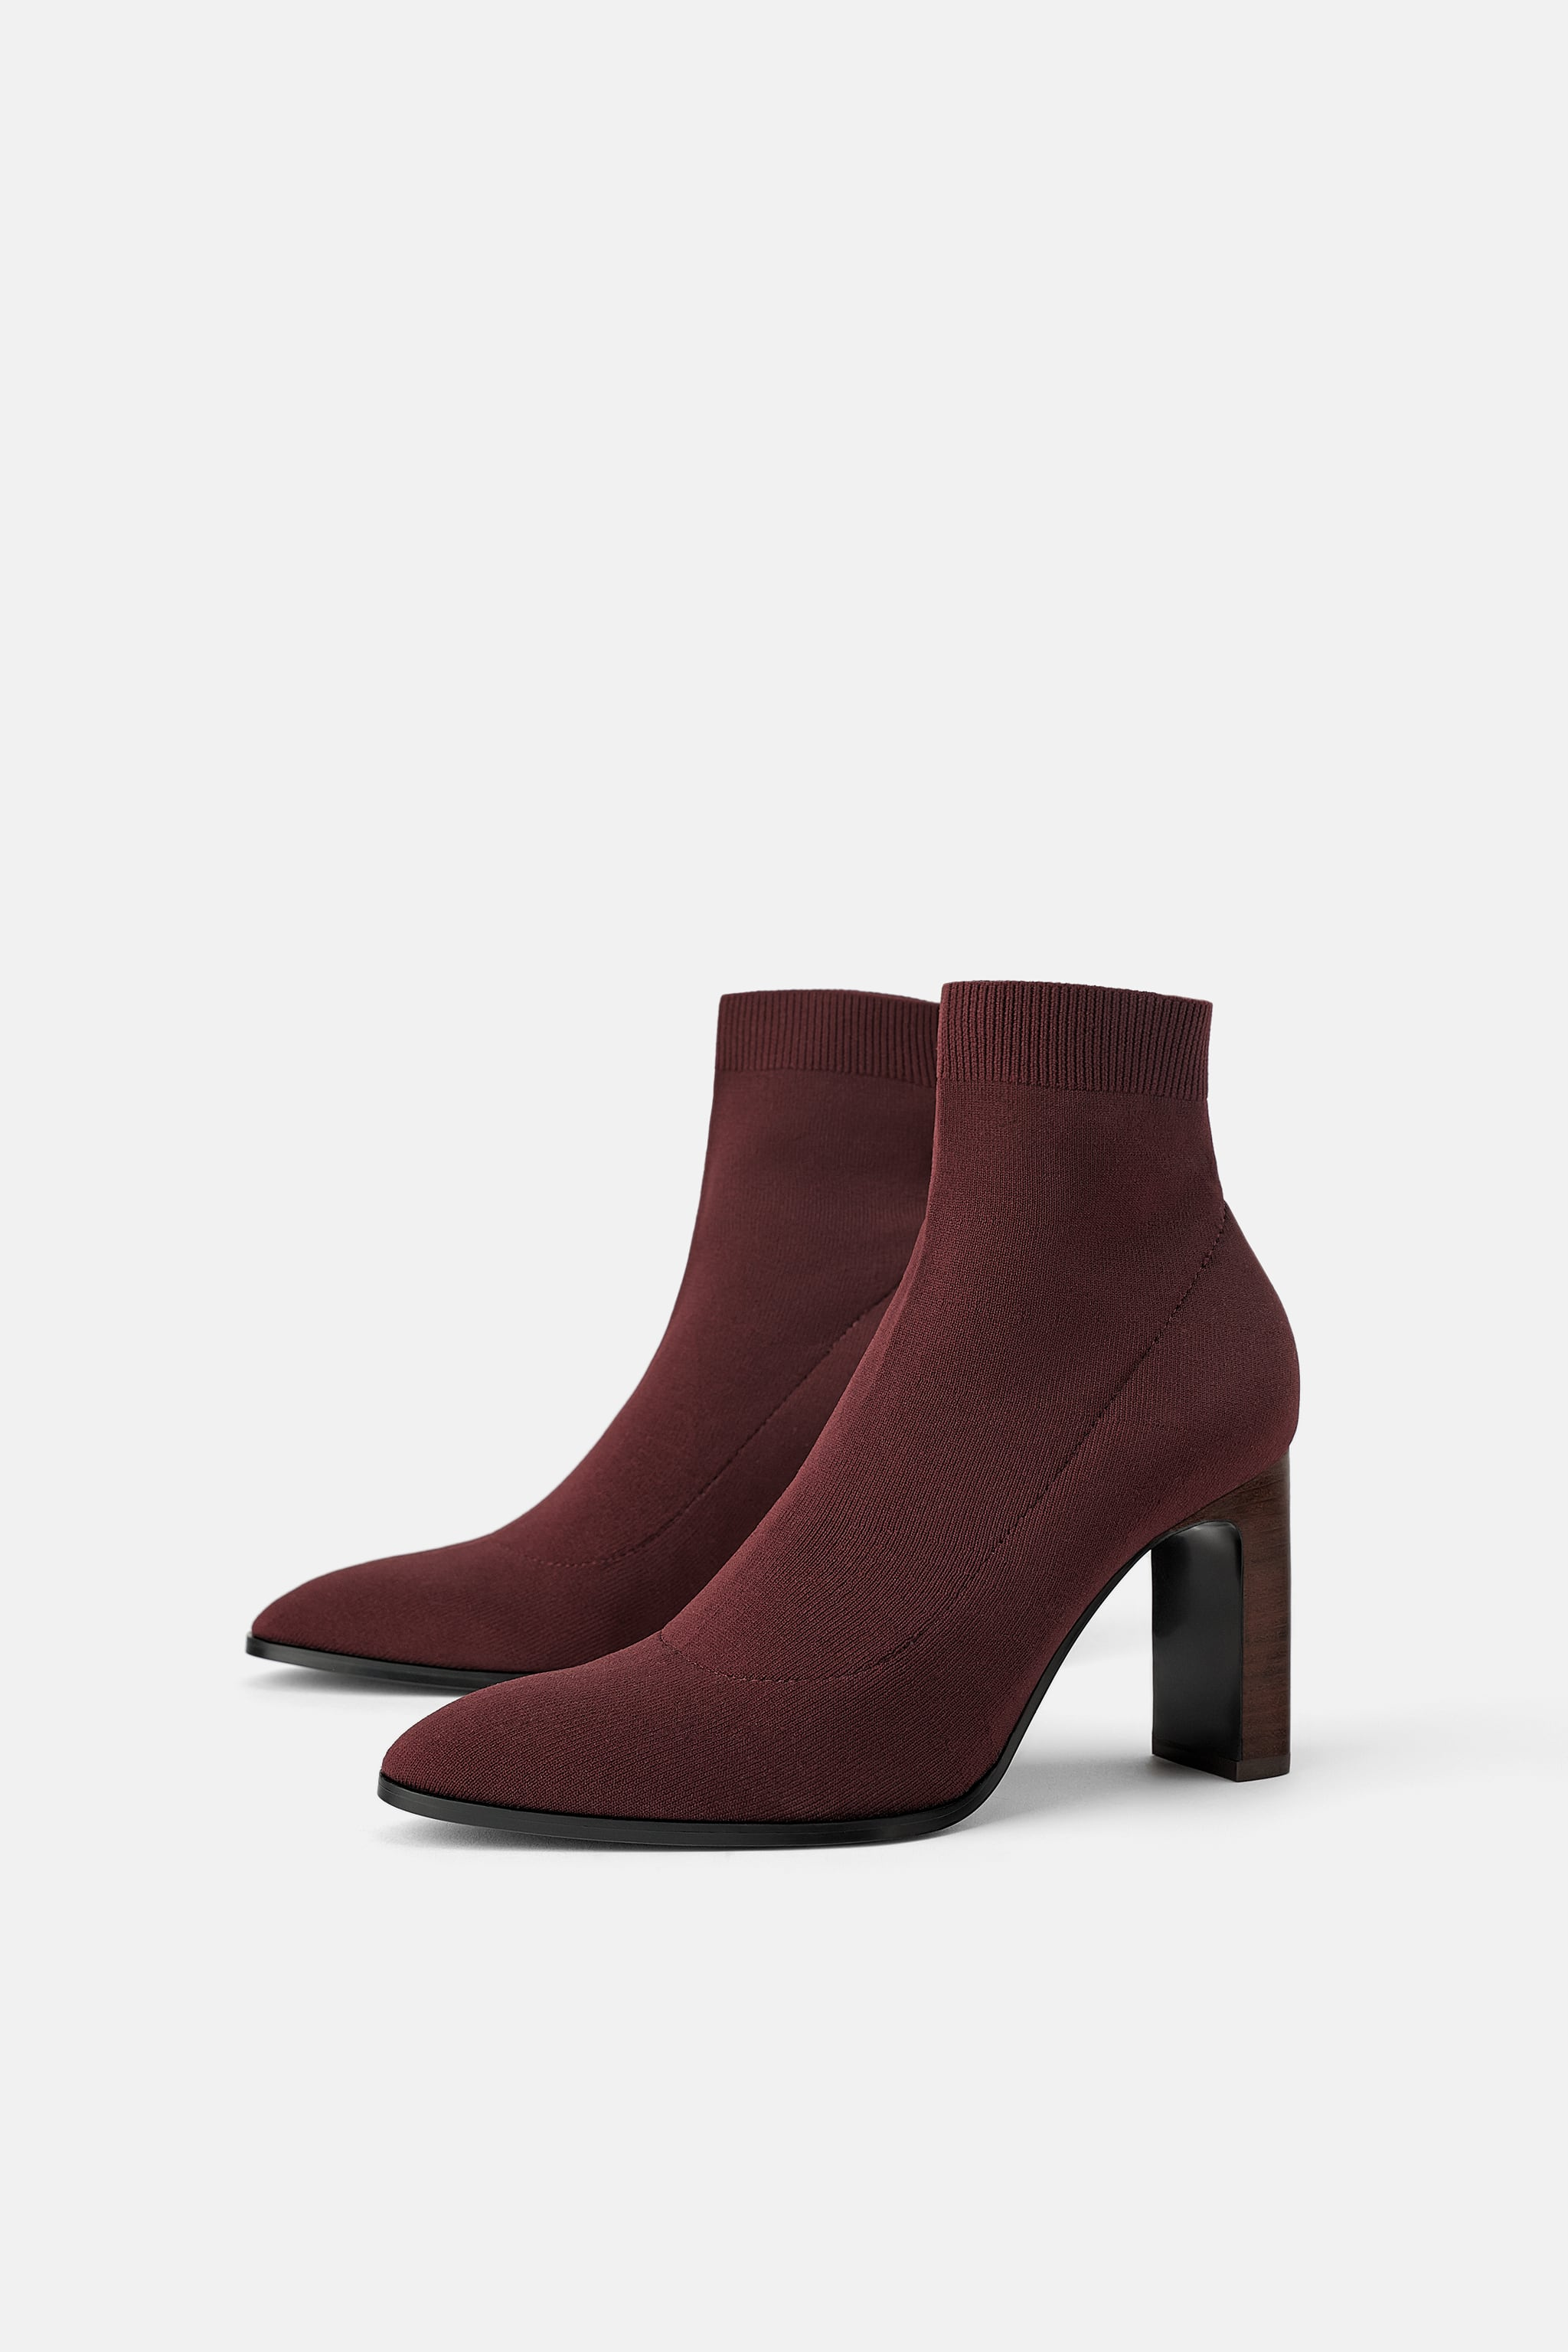 Zara HEELED SOCK-STYLE ANKLE BOOTS 85c6b7ae5ff